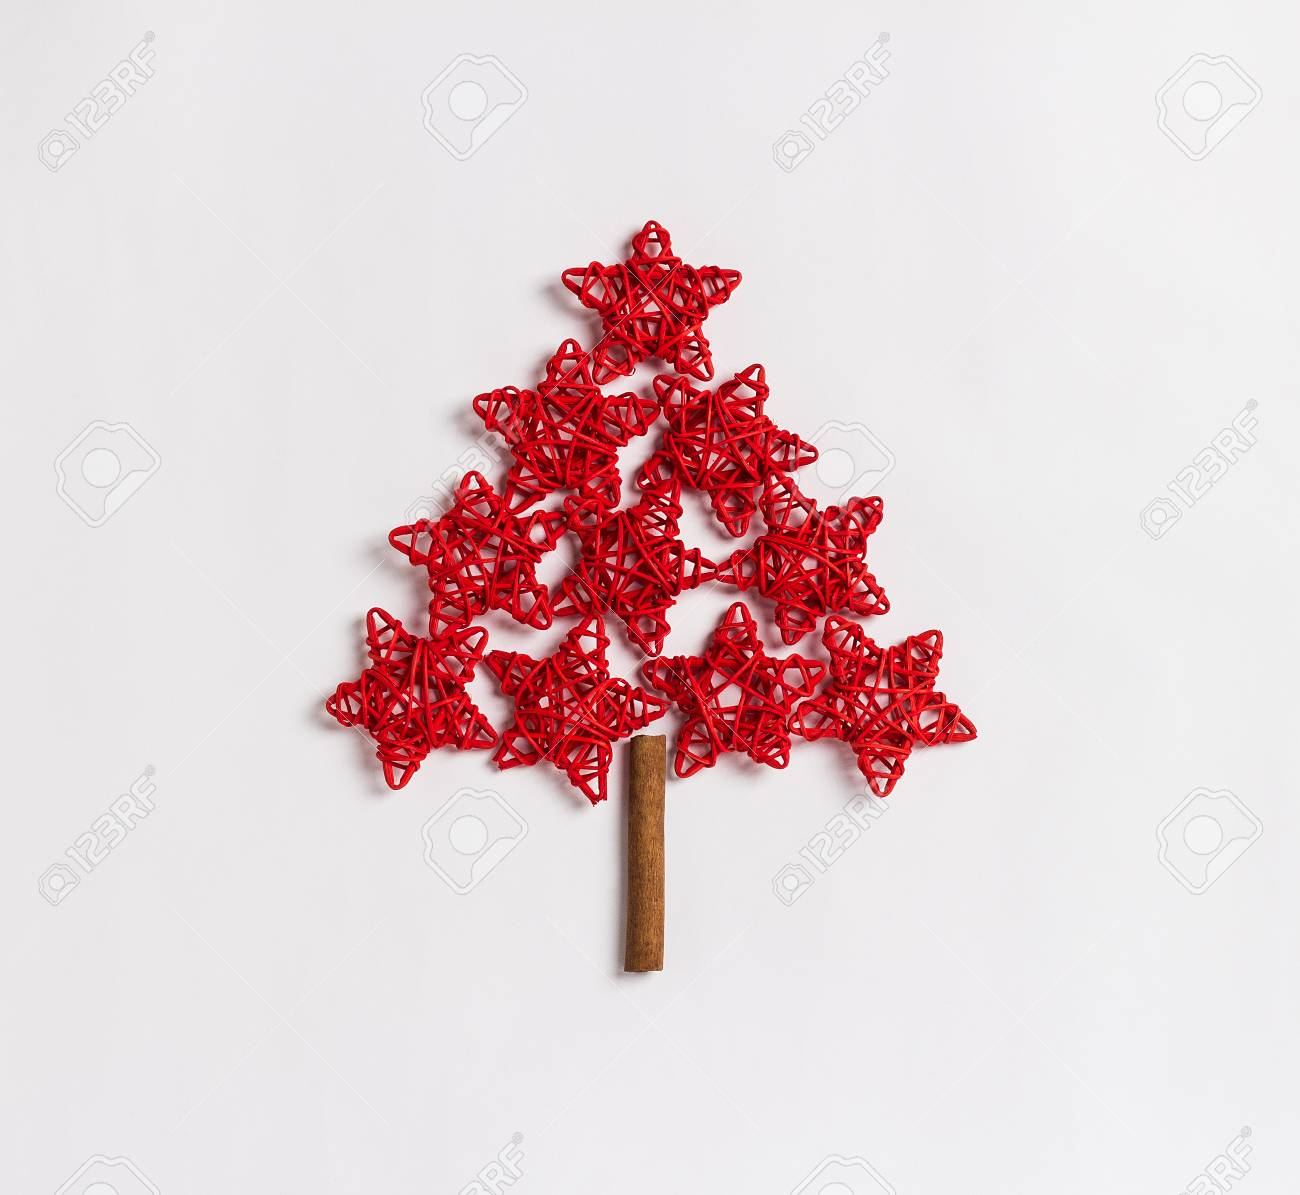 Christmas Tree Made Of Red Stars Concept Isolated On White Background Stock Photo Picture And Royalty Free Image Image 89969551